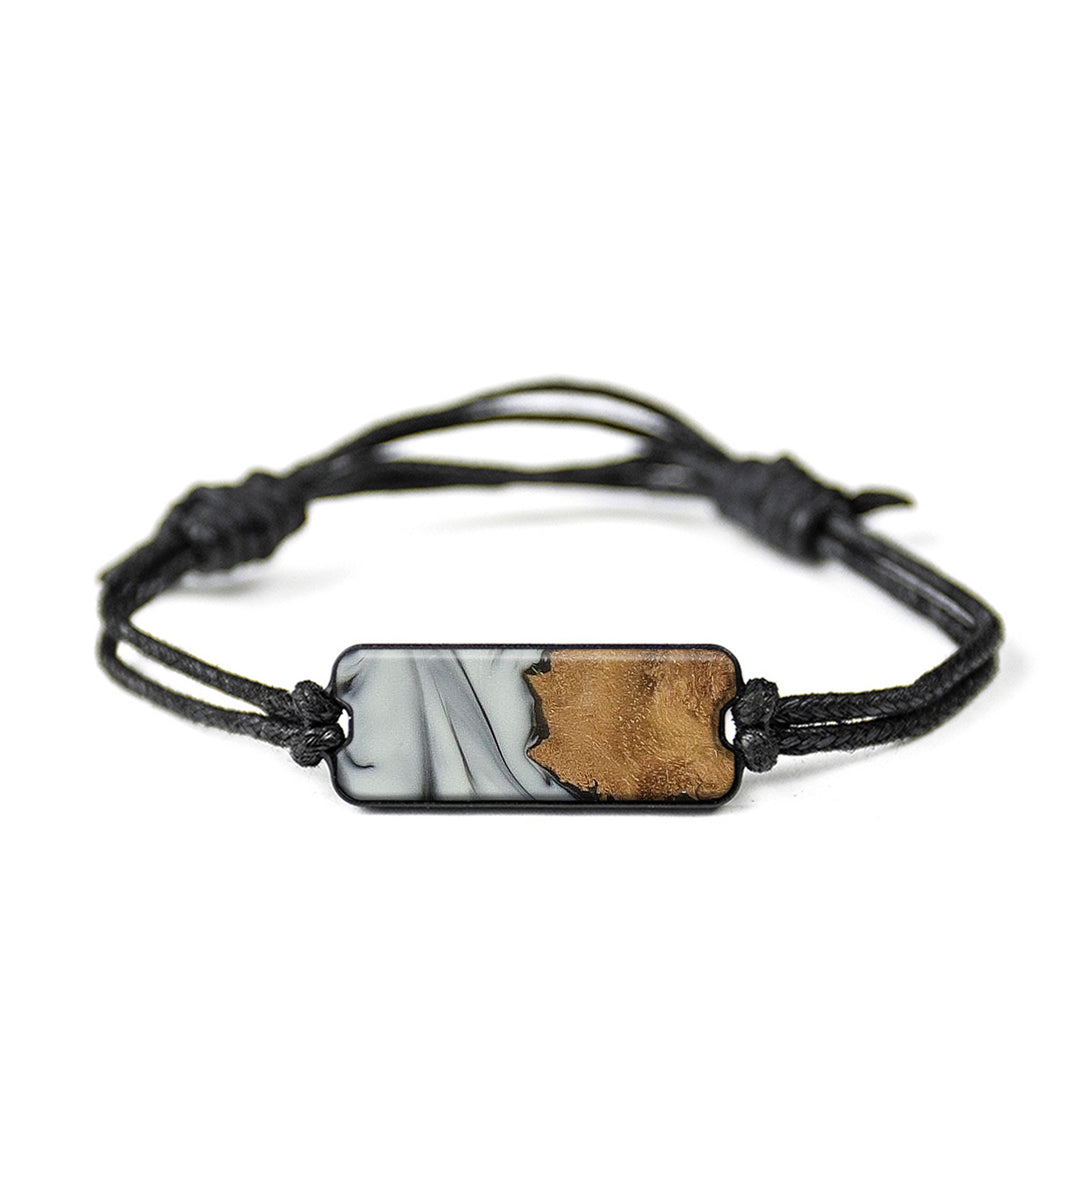 Classic Wood+Resin Bracelet - Koral (Black & White, 358221)